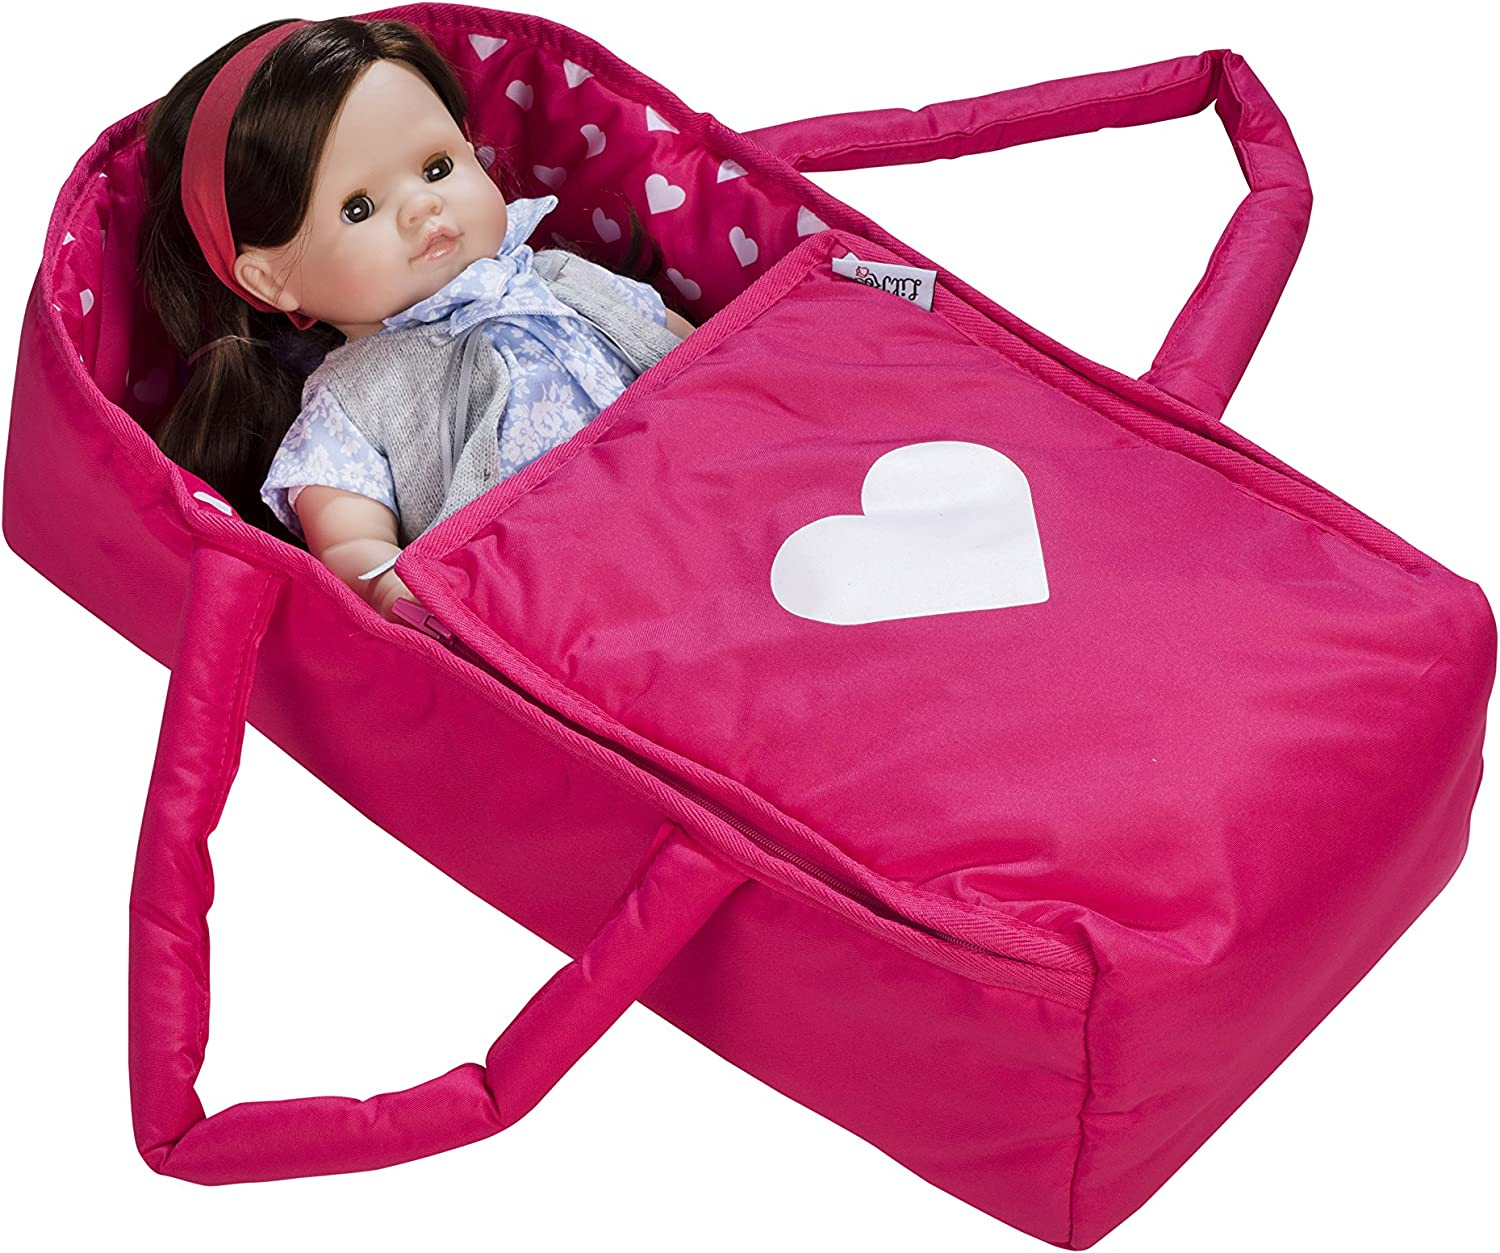 18 inch Cute Baby Doll Backpack Carrier Bag Carry Cot Accessories For Outdoors